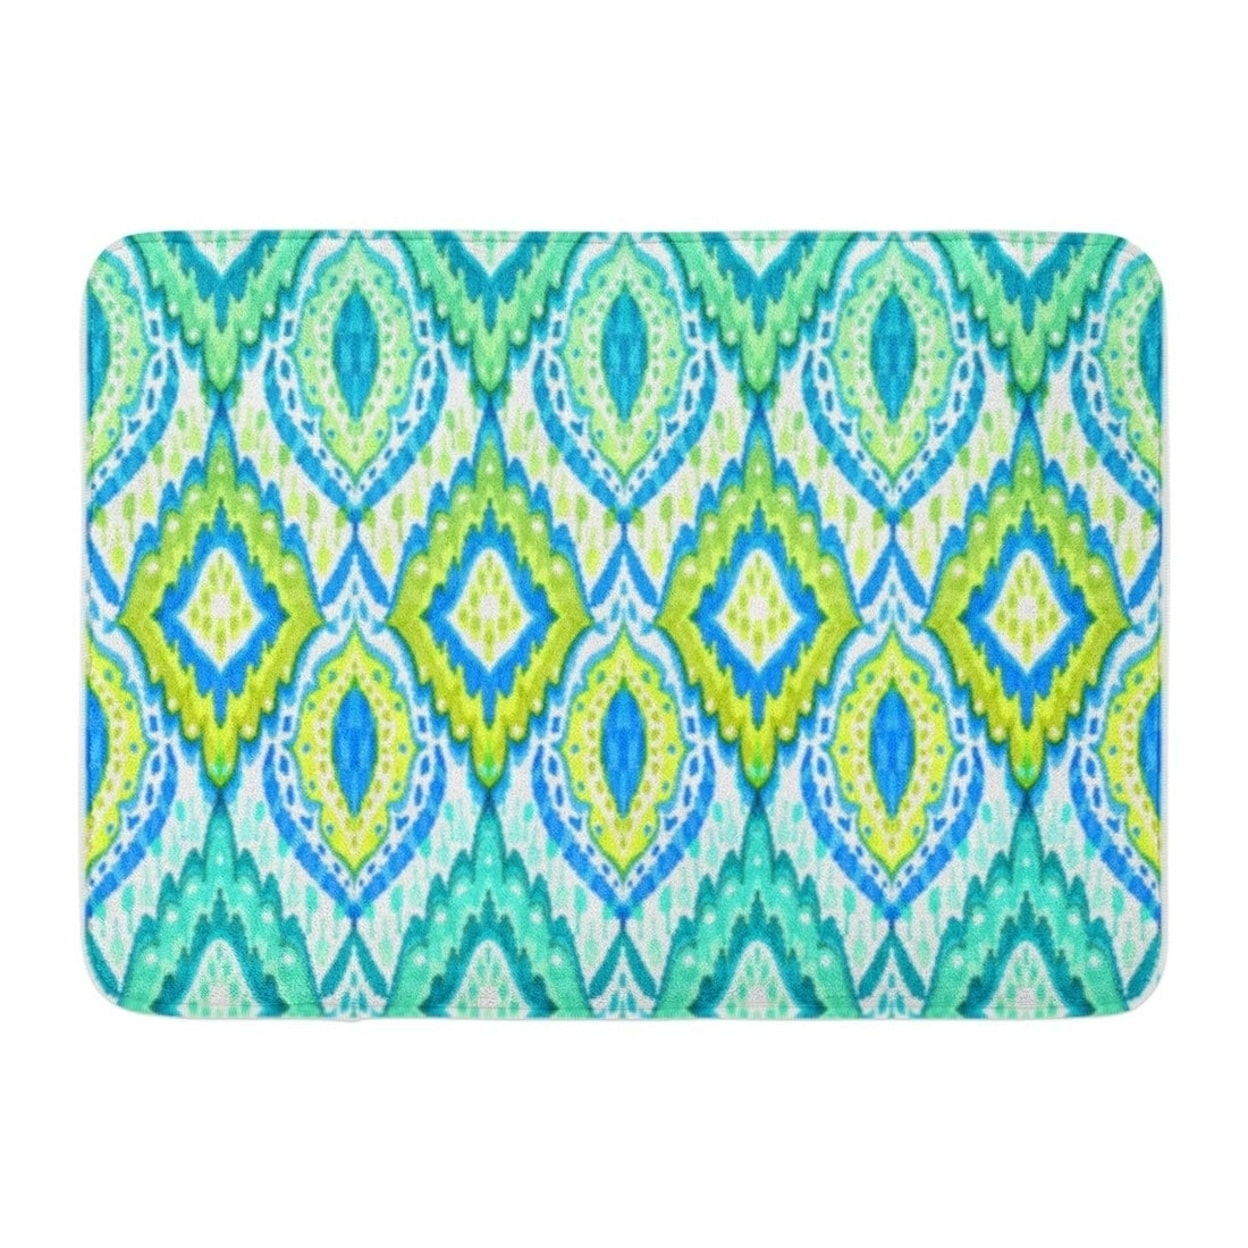 Boho Pattern Lace Paisley Shapes Turquoise Colors Detailed Doormat Floor Rug Bath Mat 30x18 Inch Multi On Sale Overstock 31781345